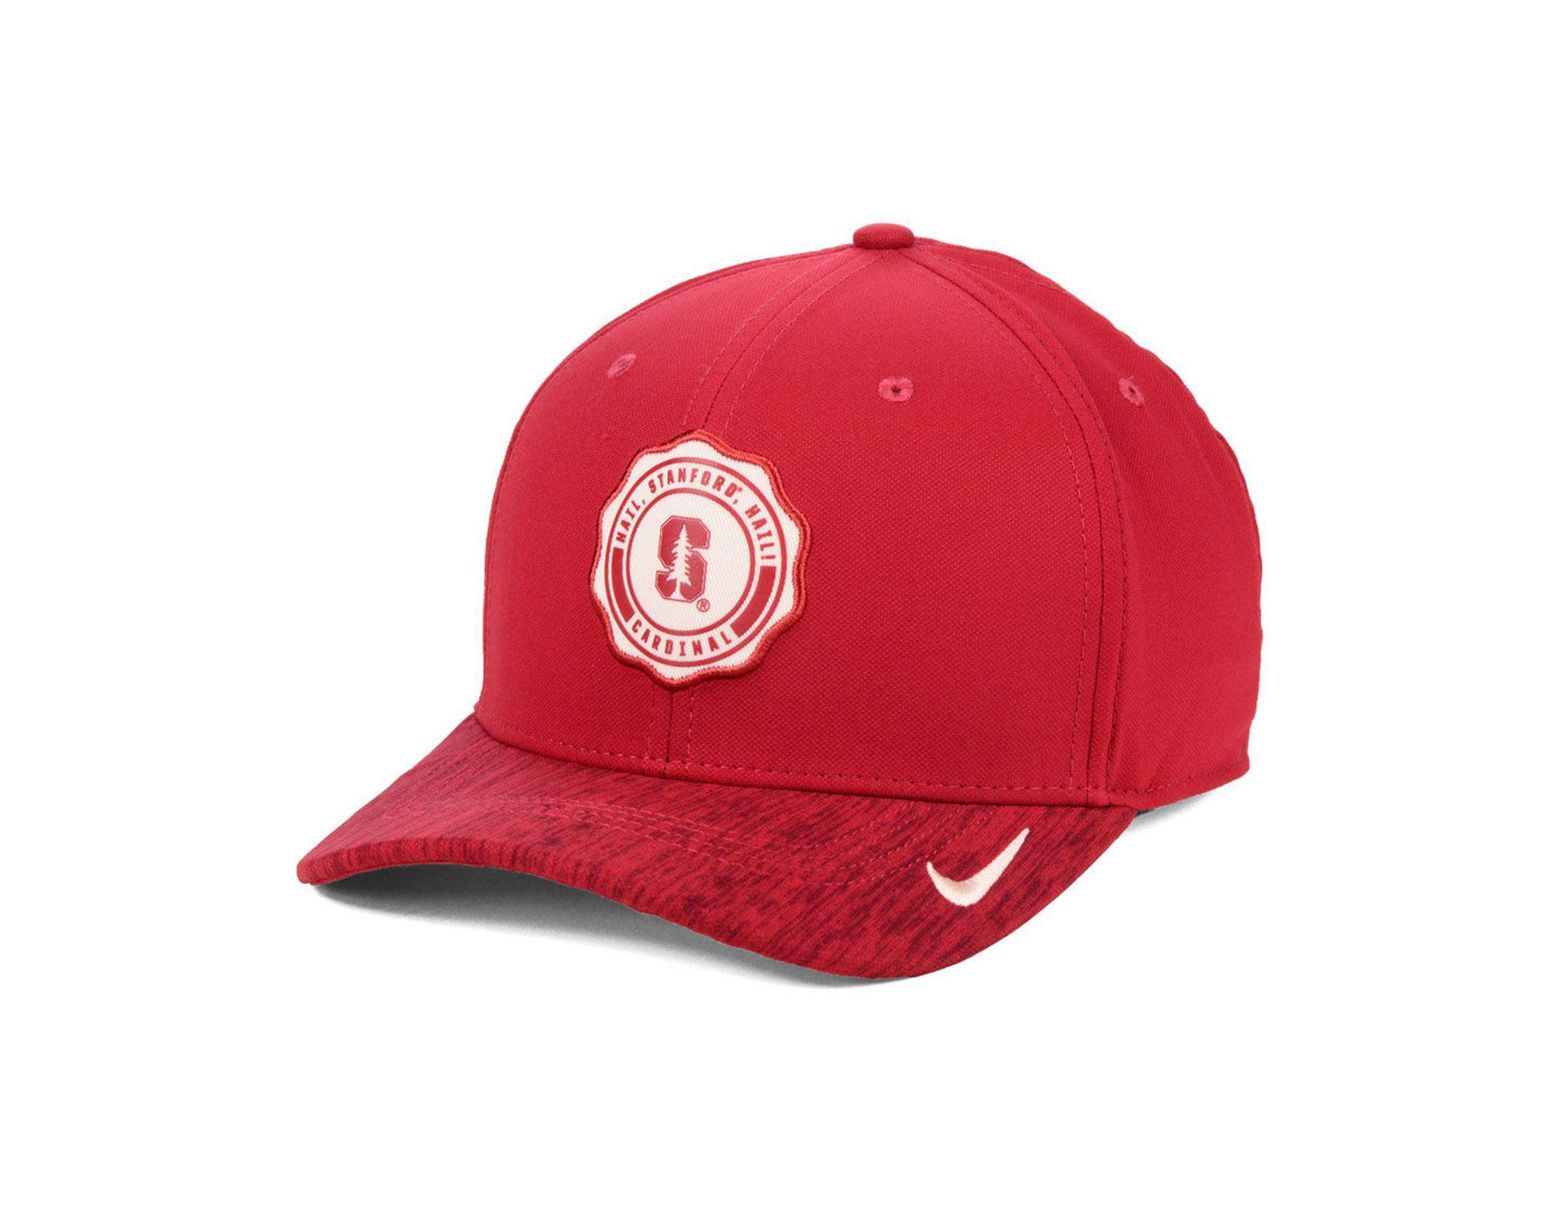 37ef5972e3ef1 Lyst - Nike Stanford Cardinal Rivalry Cap in Red for Men